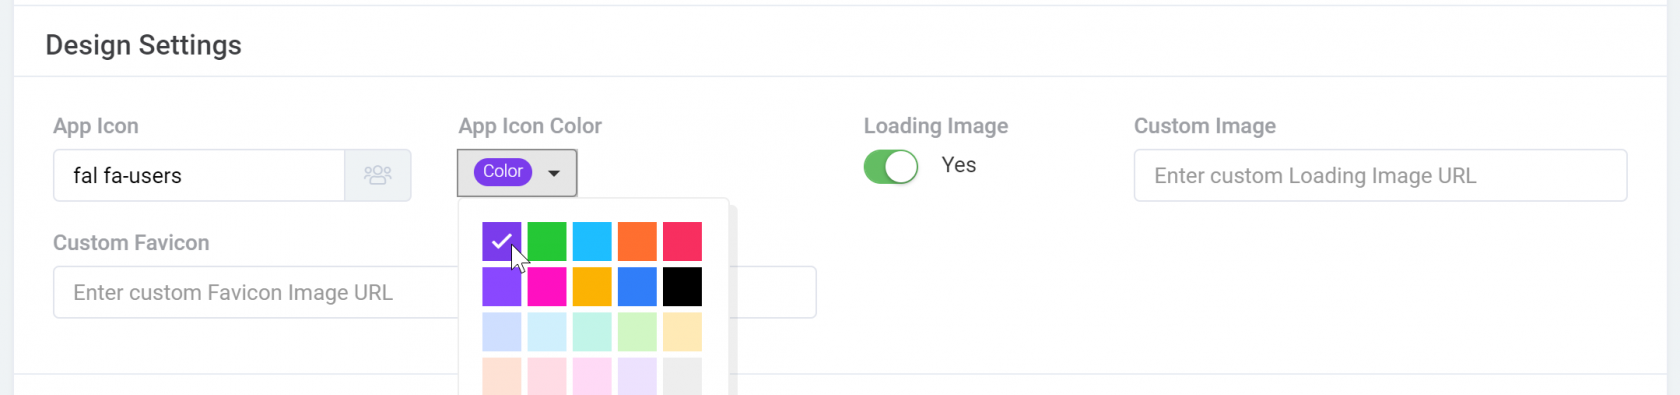 app-icon-color.png